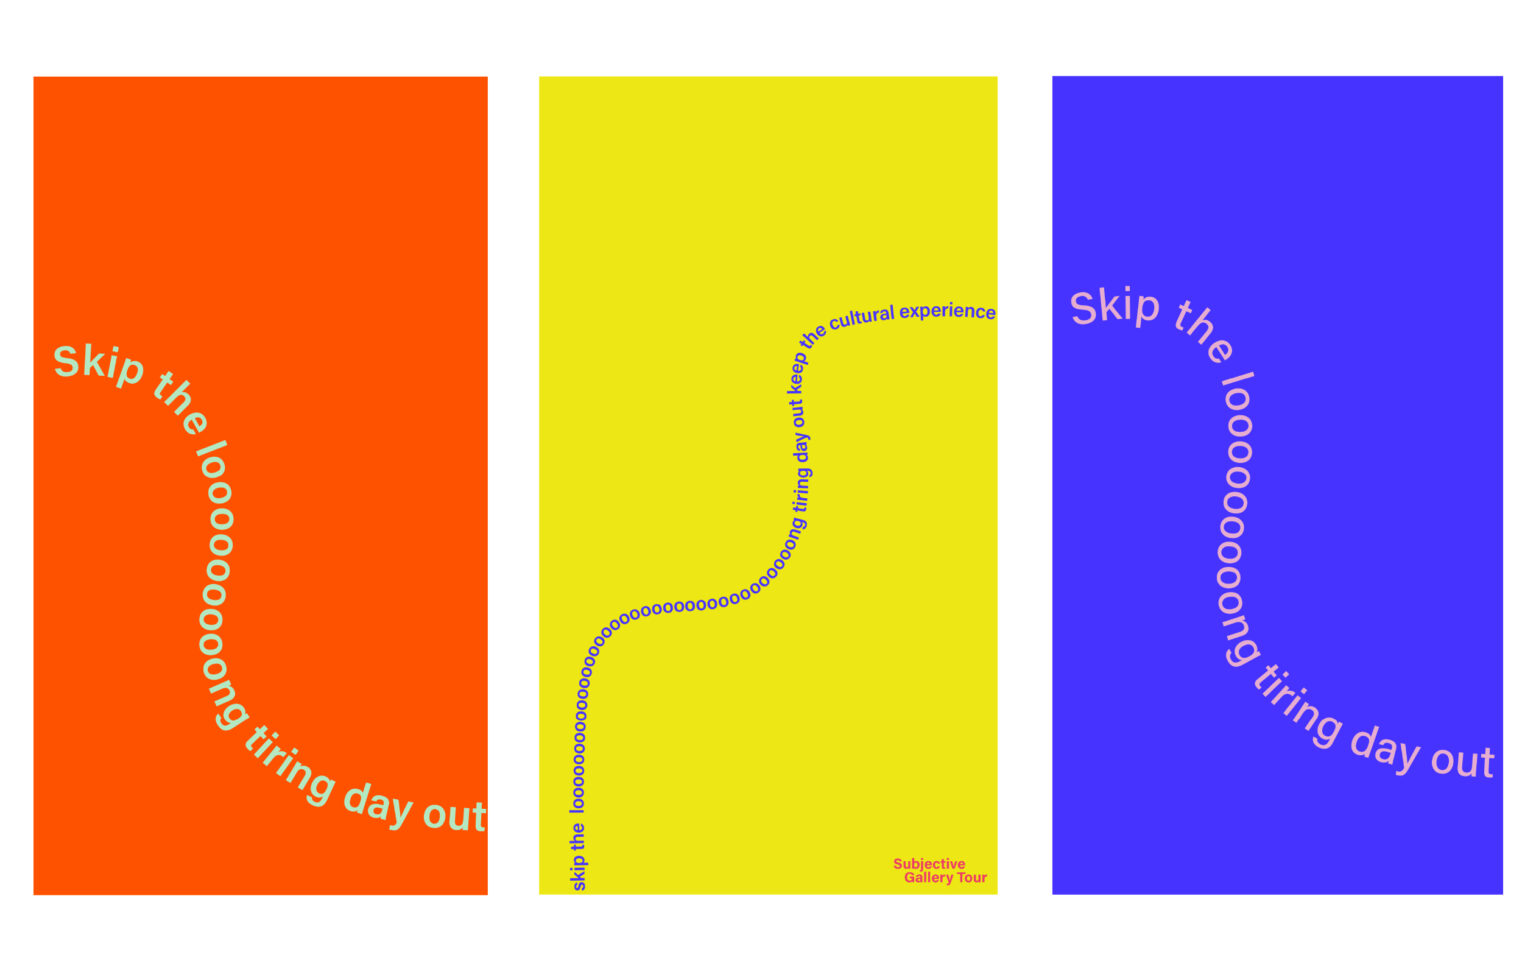 """""""skip the loooong tiring day out"""" orange poster with light green wavy text, yellow background blue wavy text, blue background pink wavy text"""